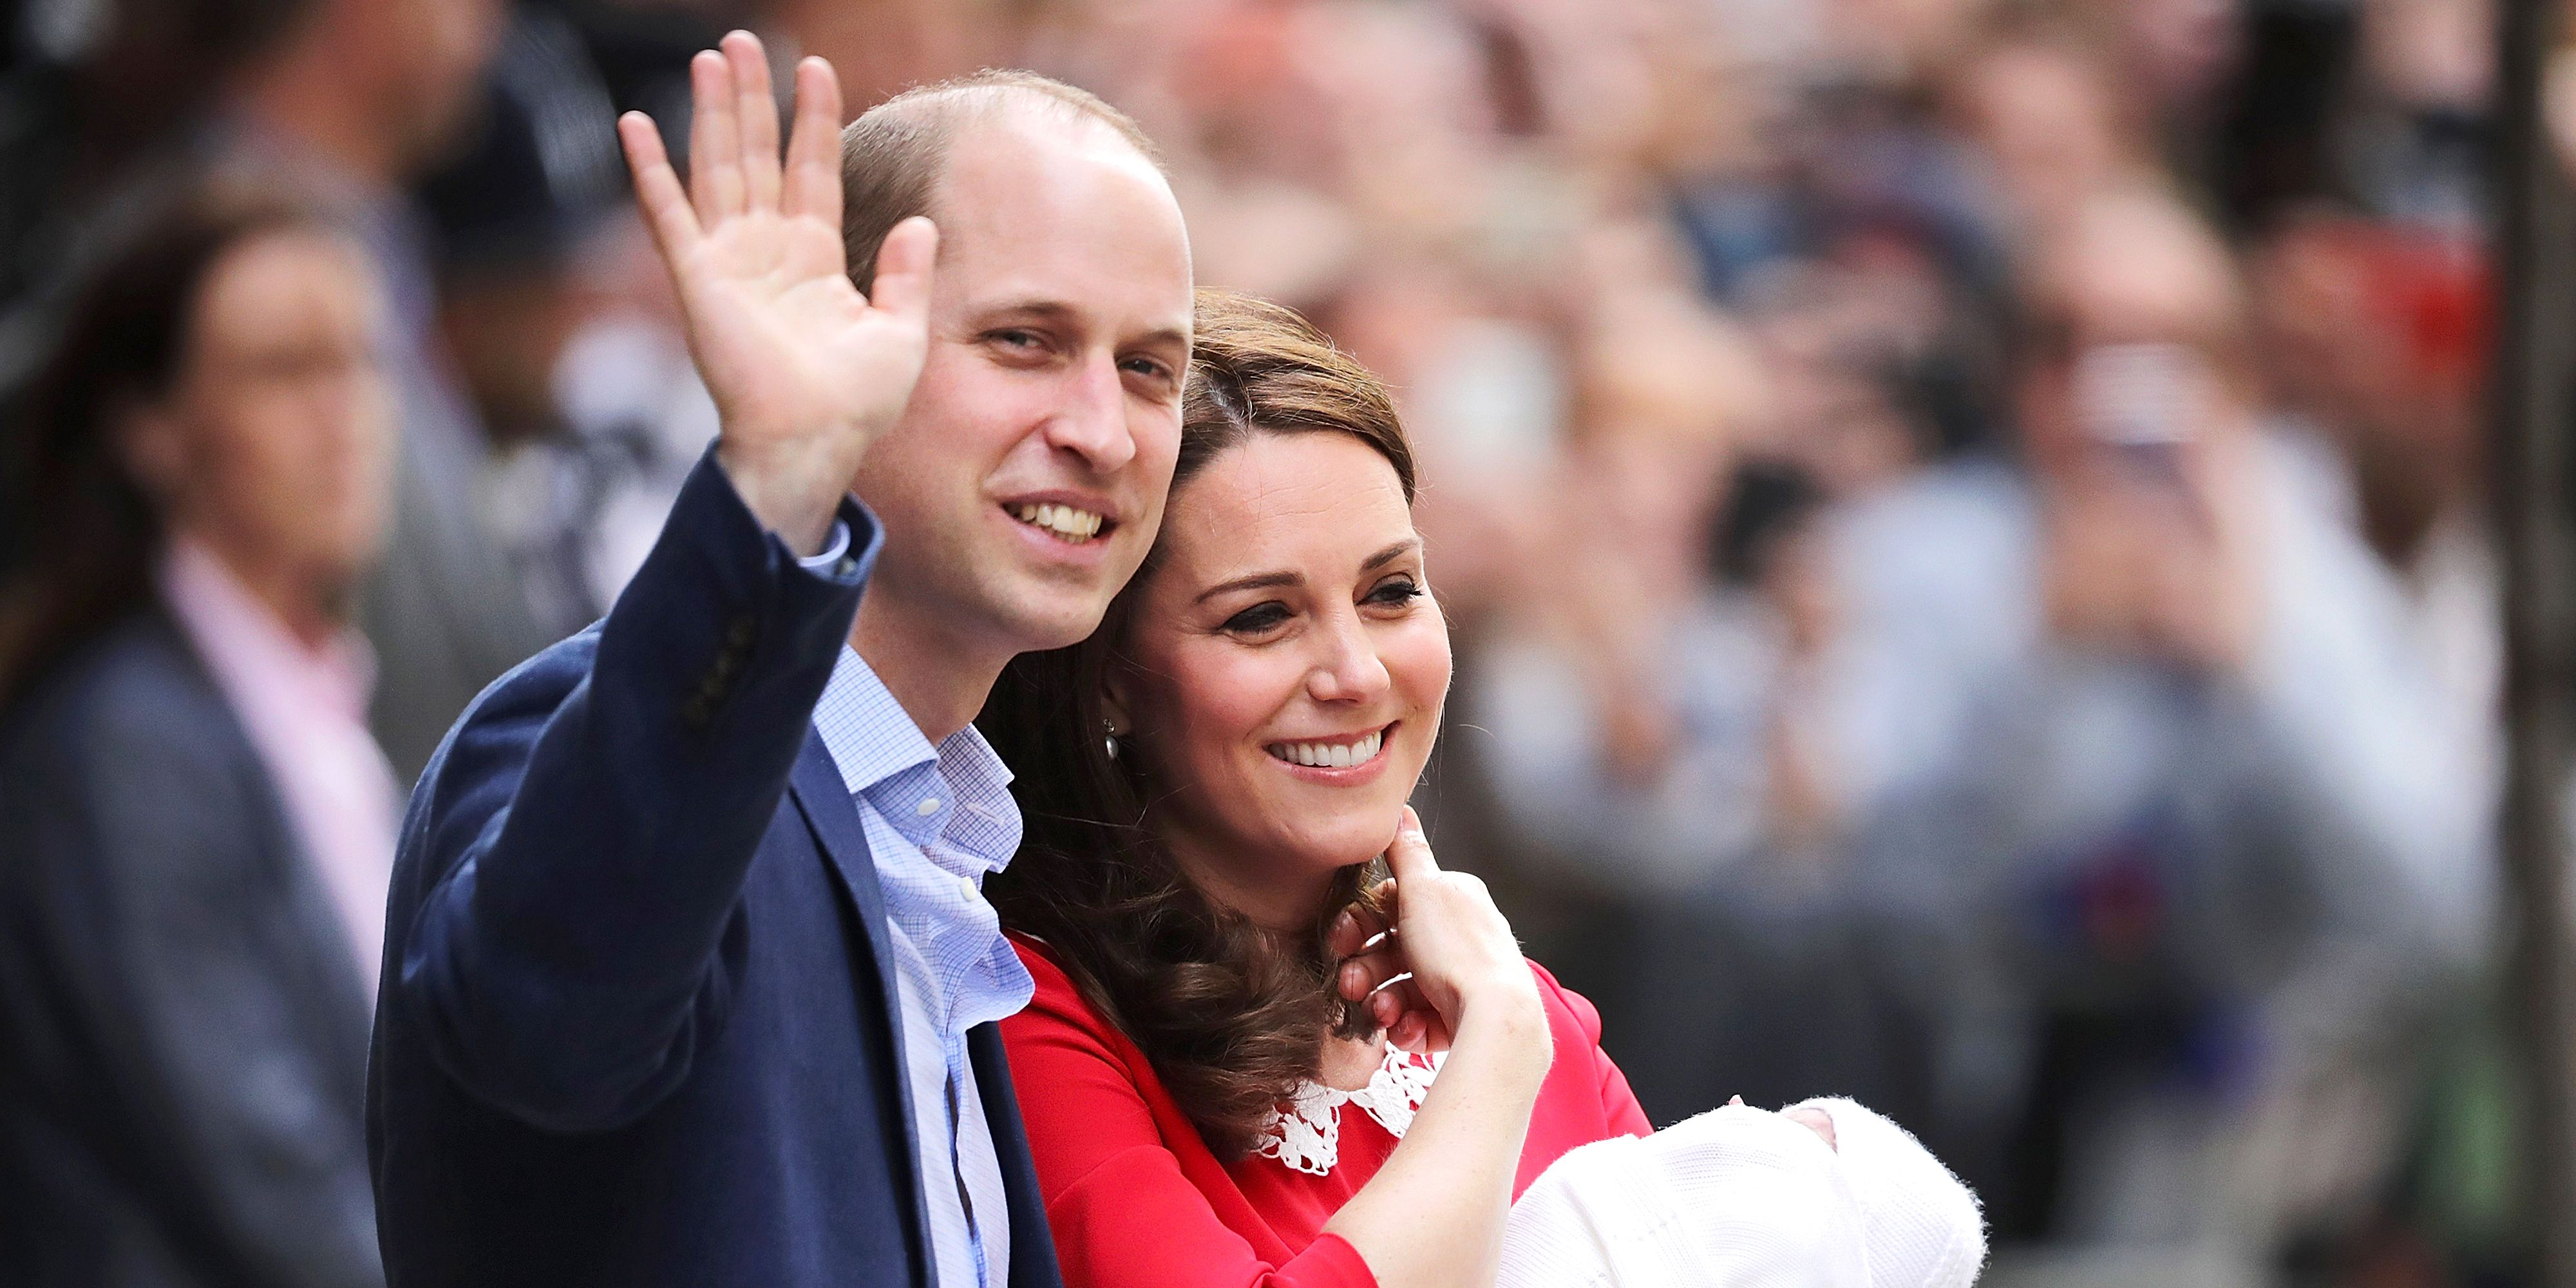 All New Royal Baby Visitors So Far Who Has Seen The Royal Baby